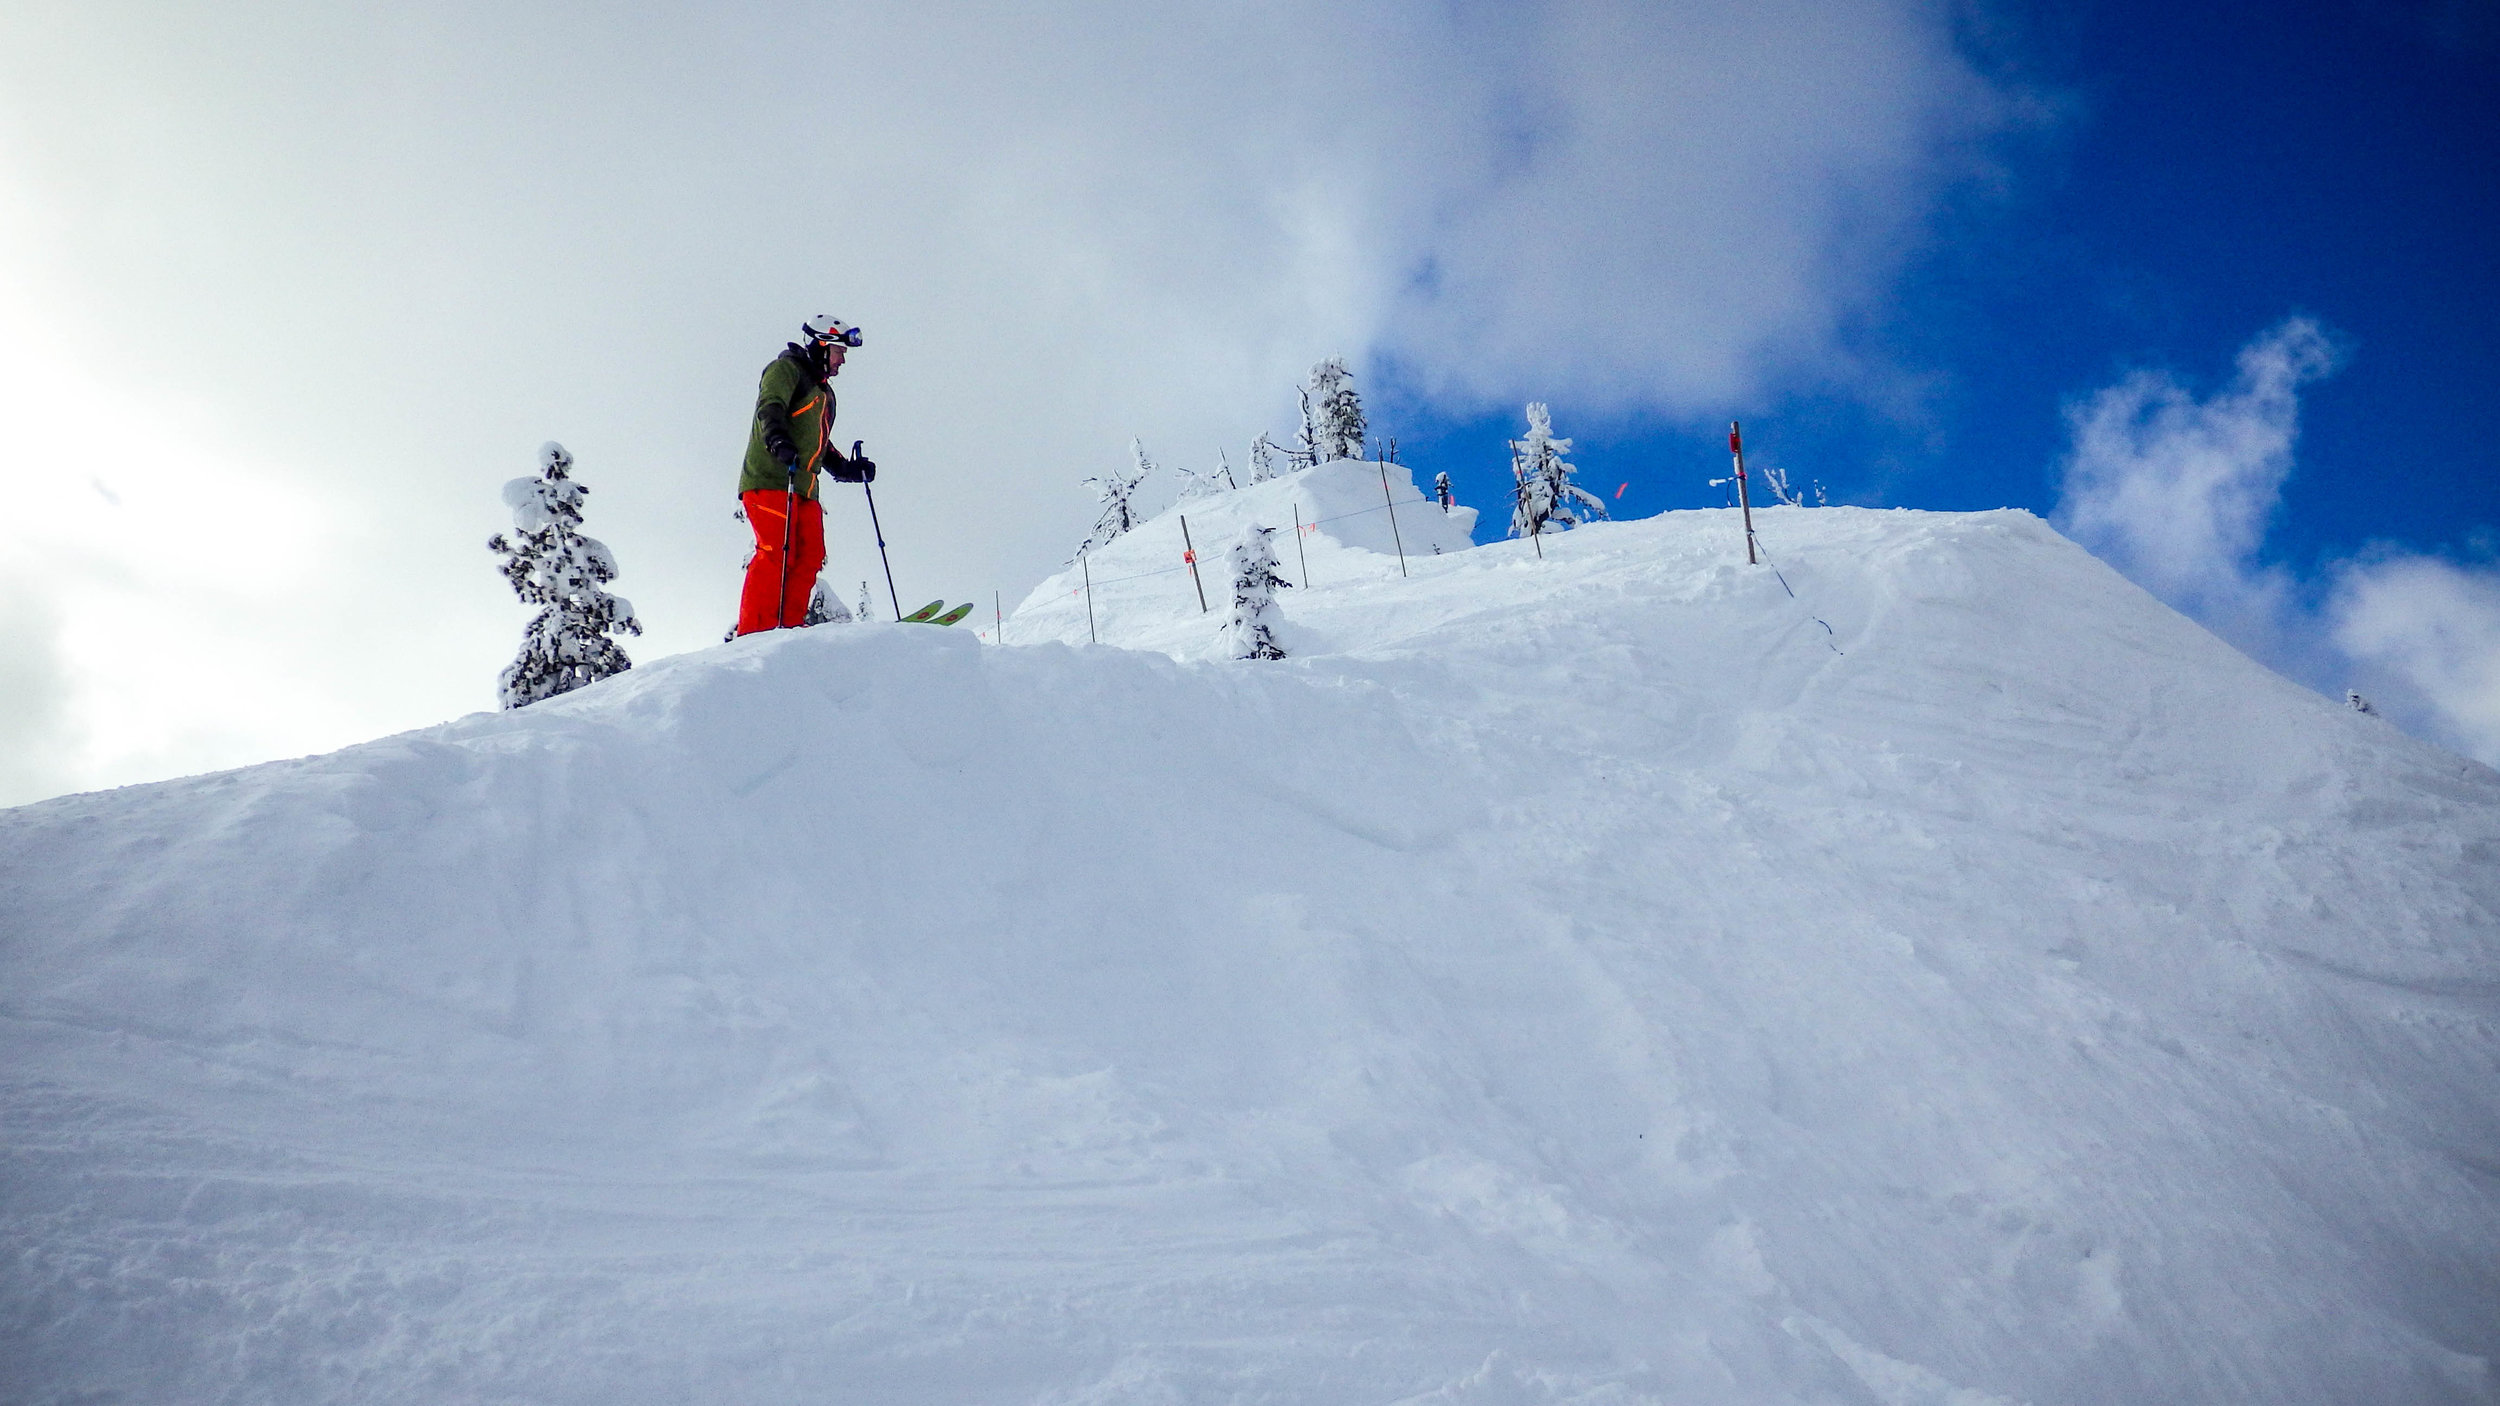 I'm picking my line through one of the many chutes at Red Mountain